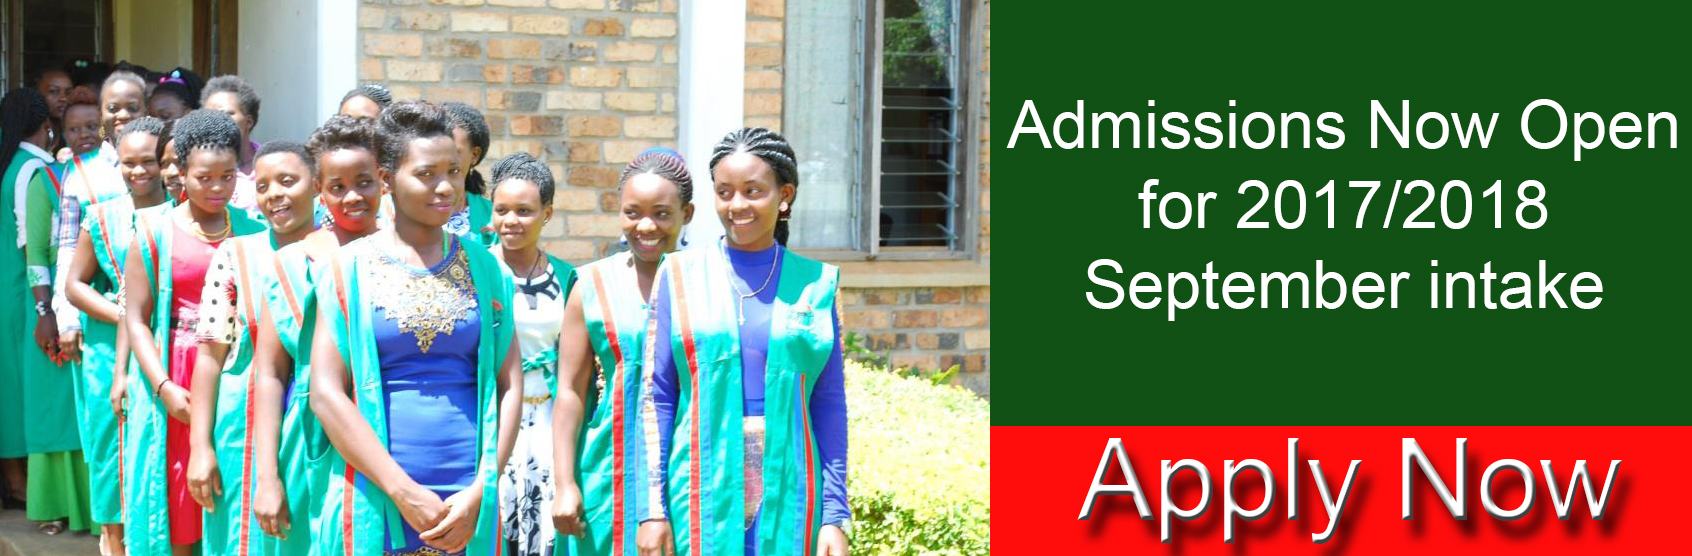 Admissions for 2017-2018 are Now Open